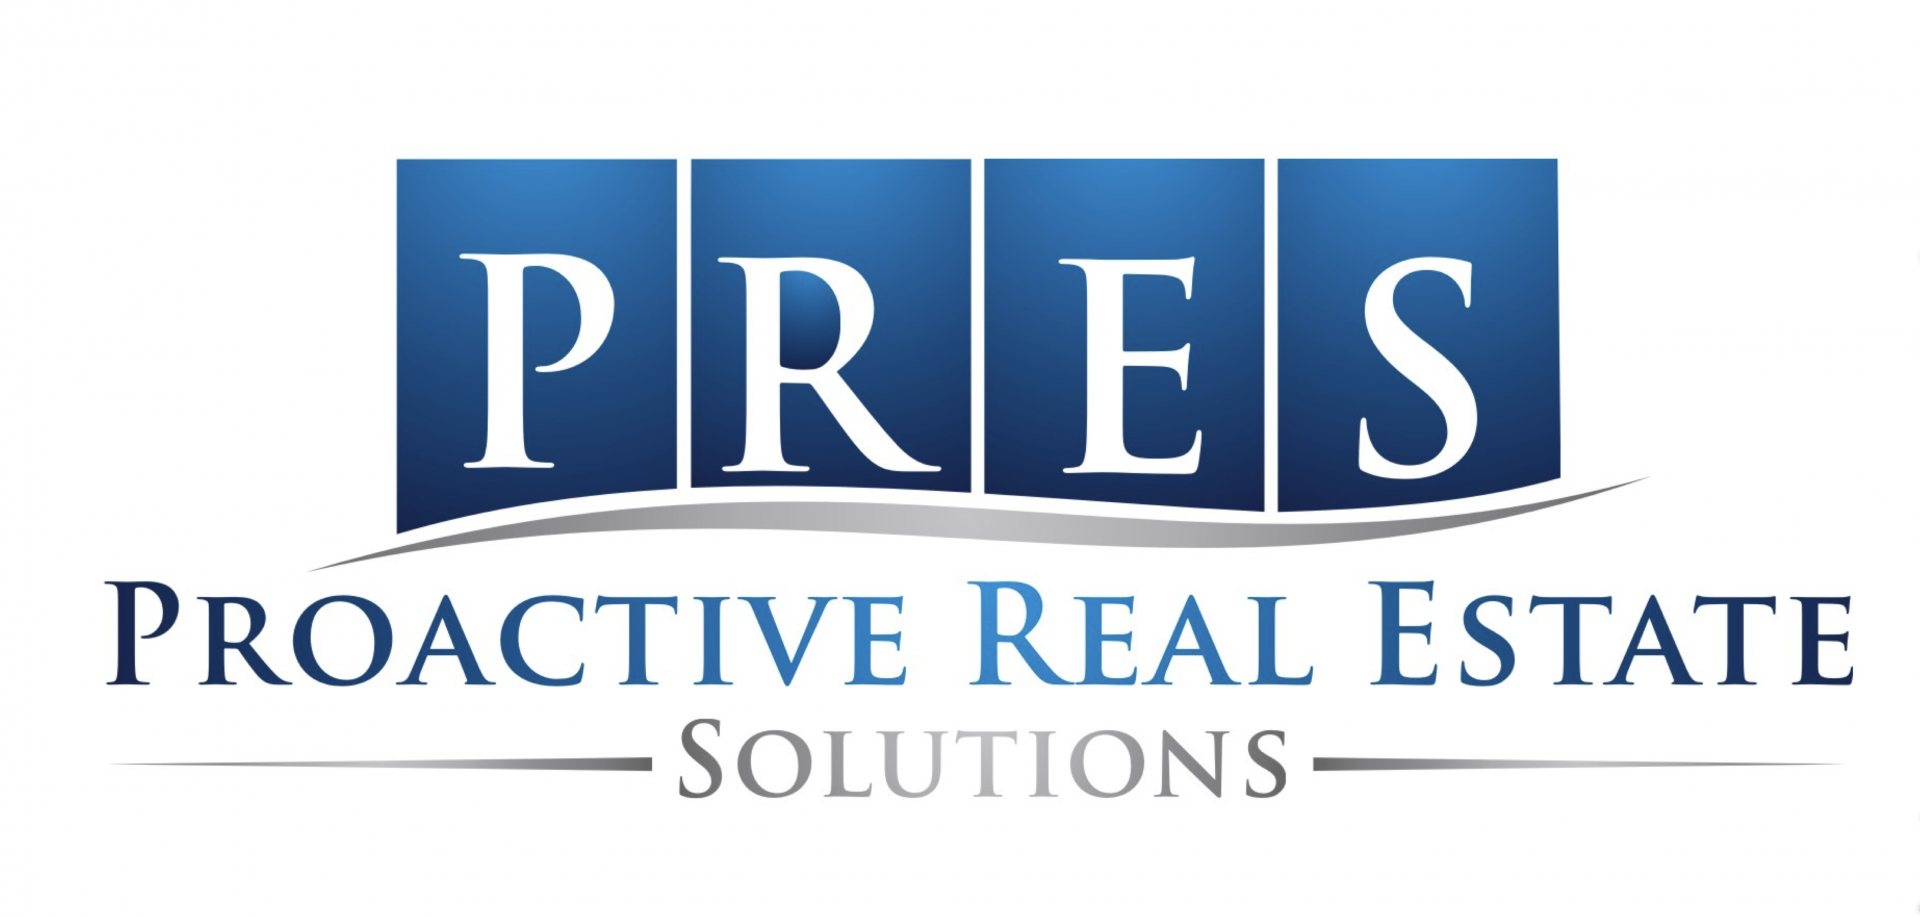 Proactive Real Estate Solutions logo